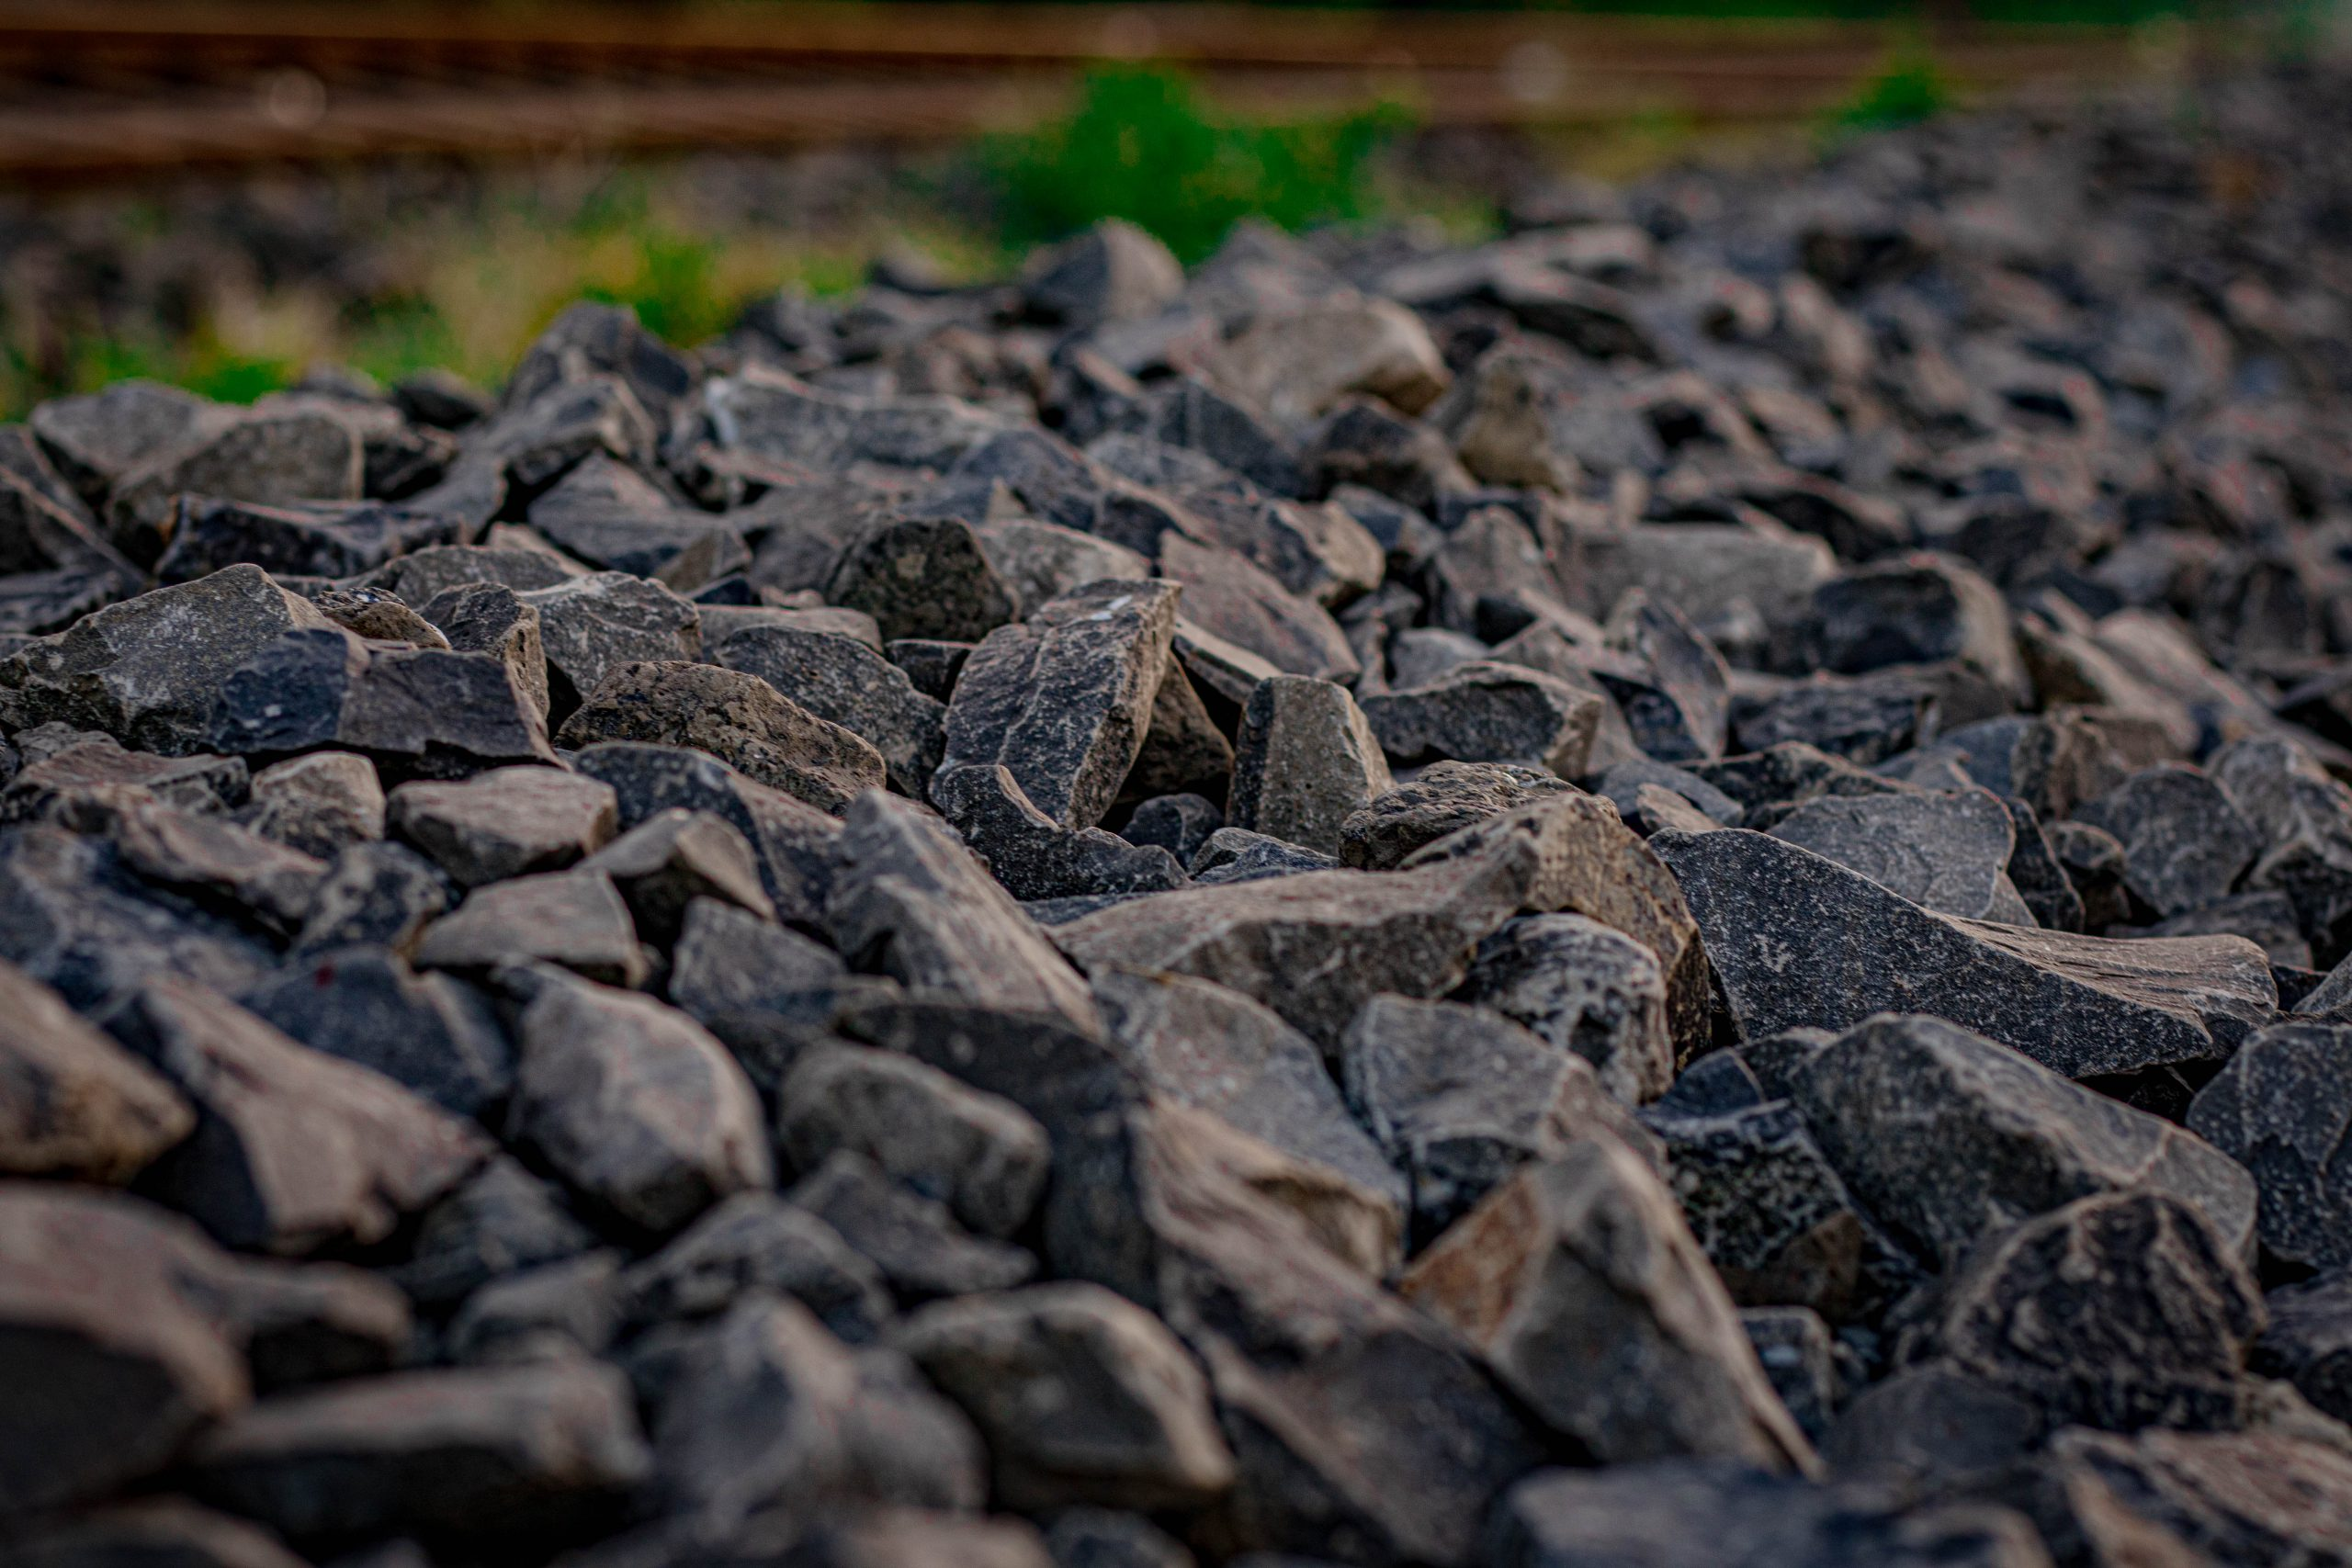 A Rubble in Railway Side on Focus